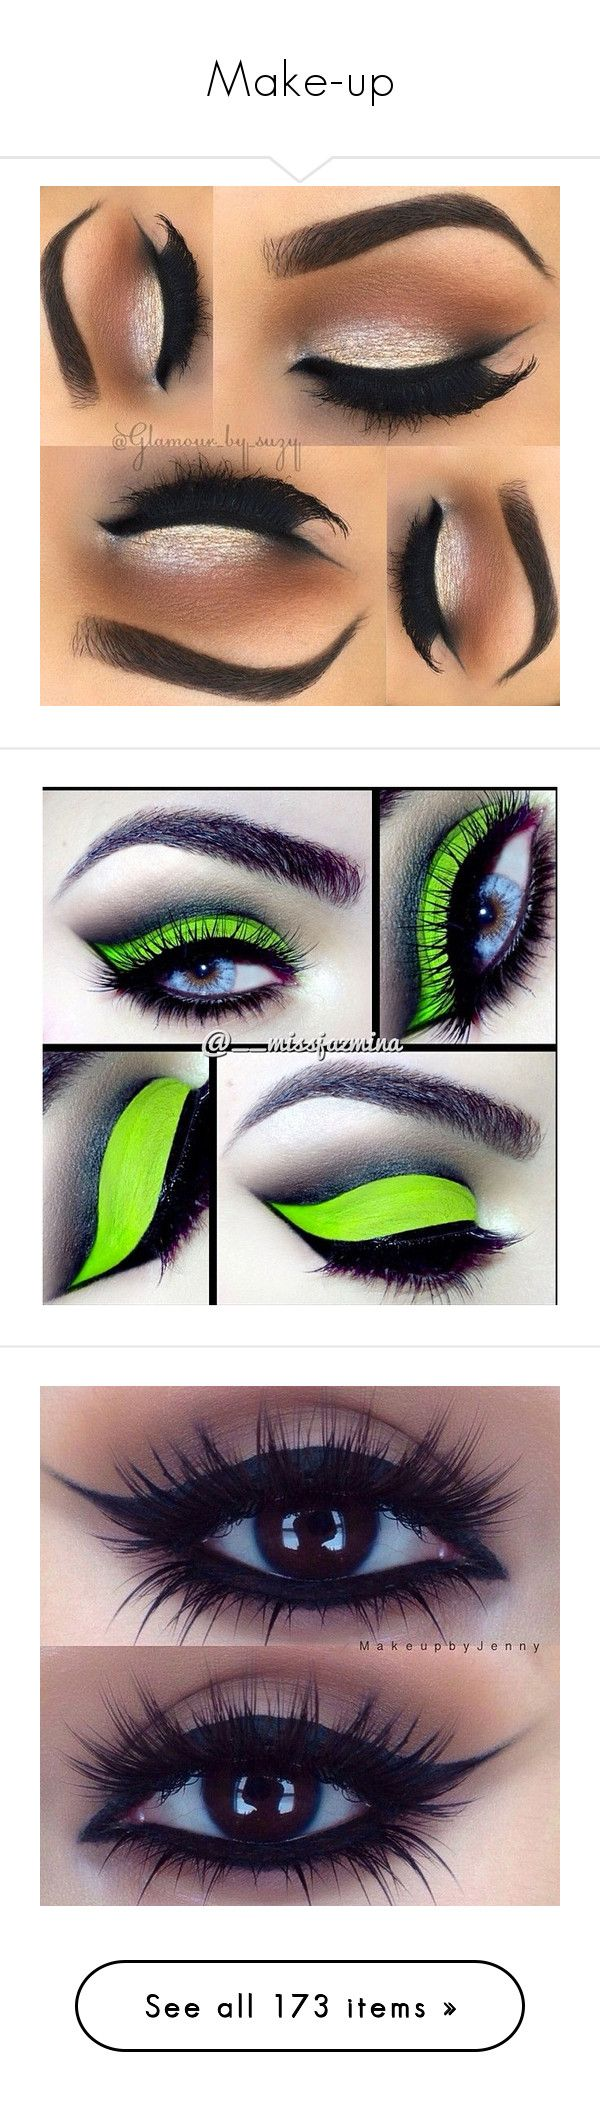 """""""Make-up"""" by makhinegankaller14 ❤ liked on Polyvore featuring beauty products, makeup, eye makeup, eyeshadow, eyes, beauty, palette eyeshadow, eye make-up, eye brow makeup and lip makeup"""